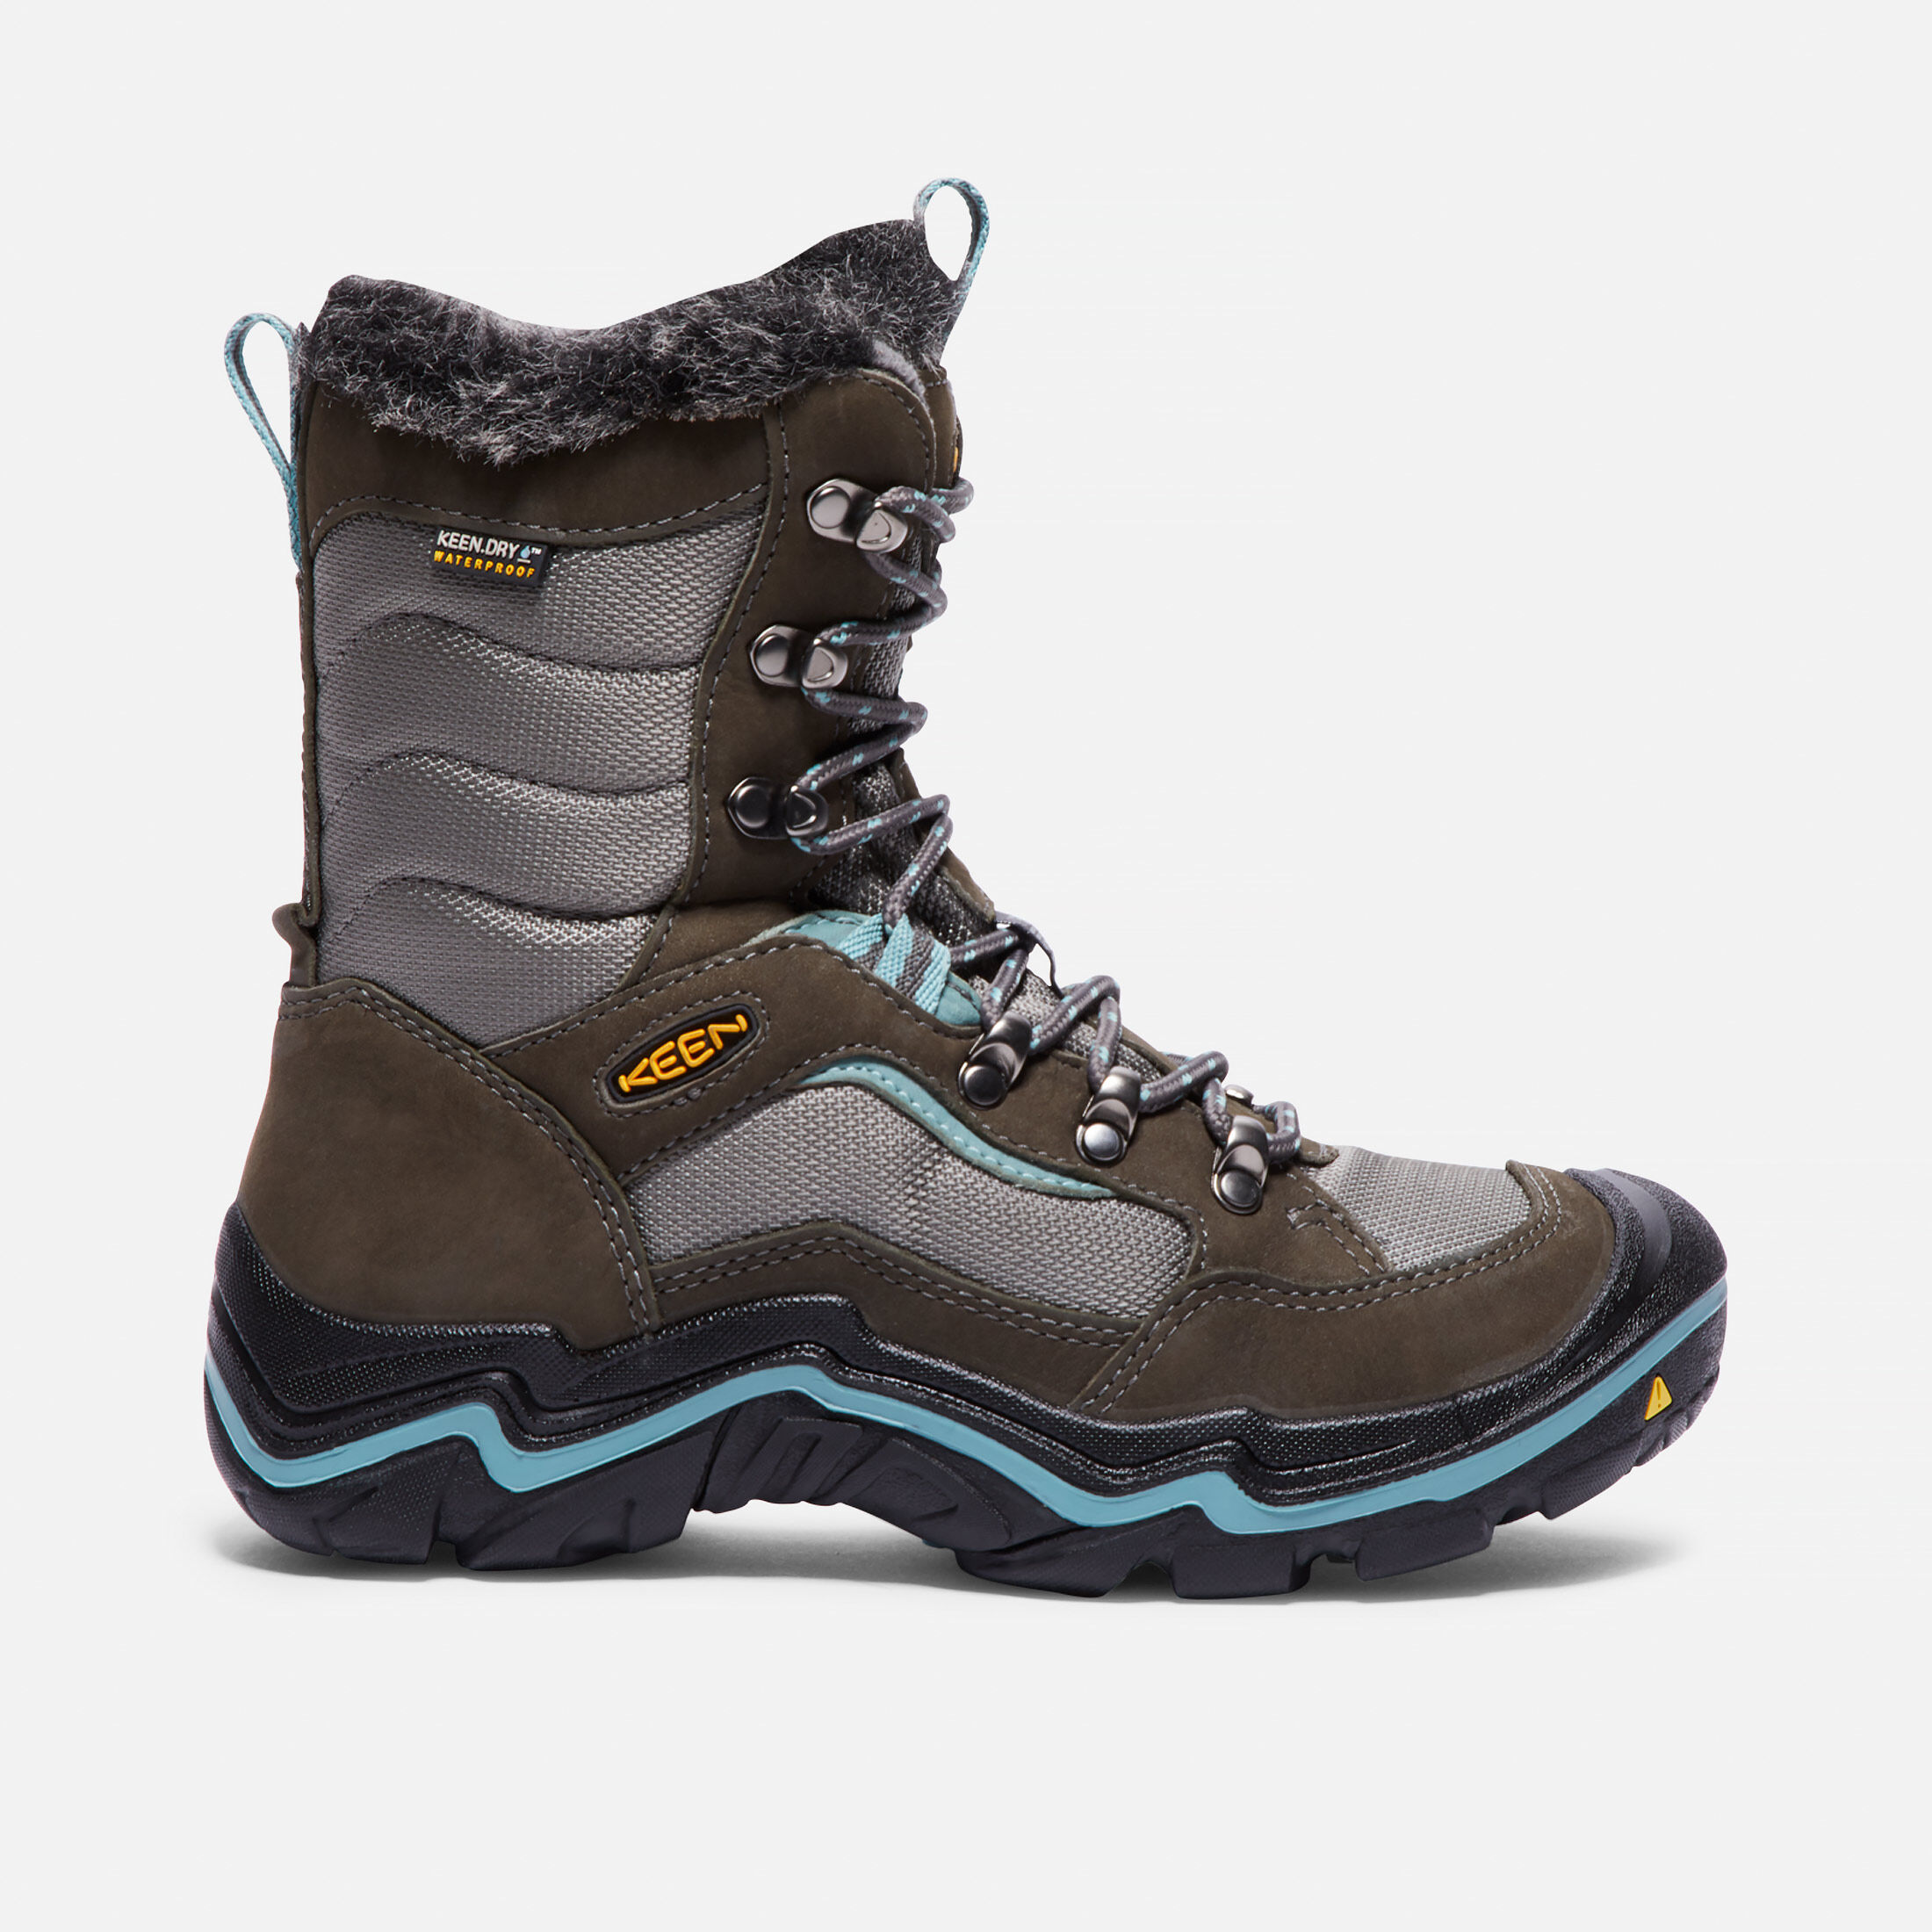 Durand Polar Waterproof pour femme in Magnet/Mineral Blue , large view.